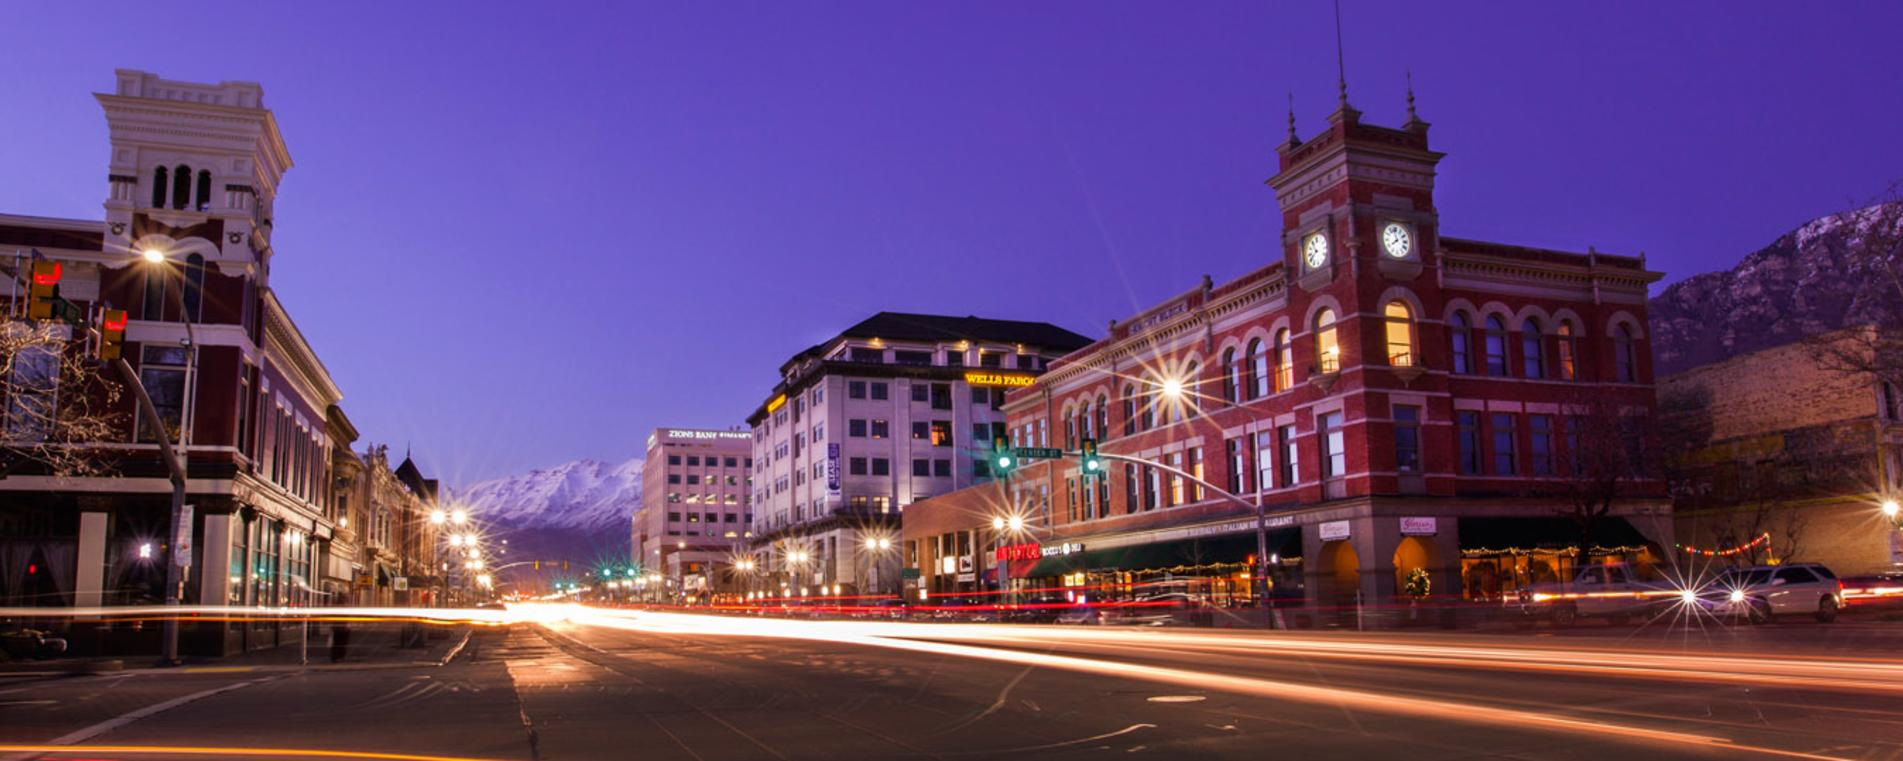 Downtown Provo at Night